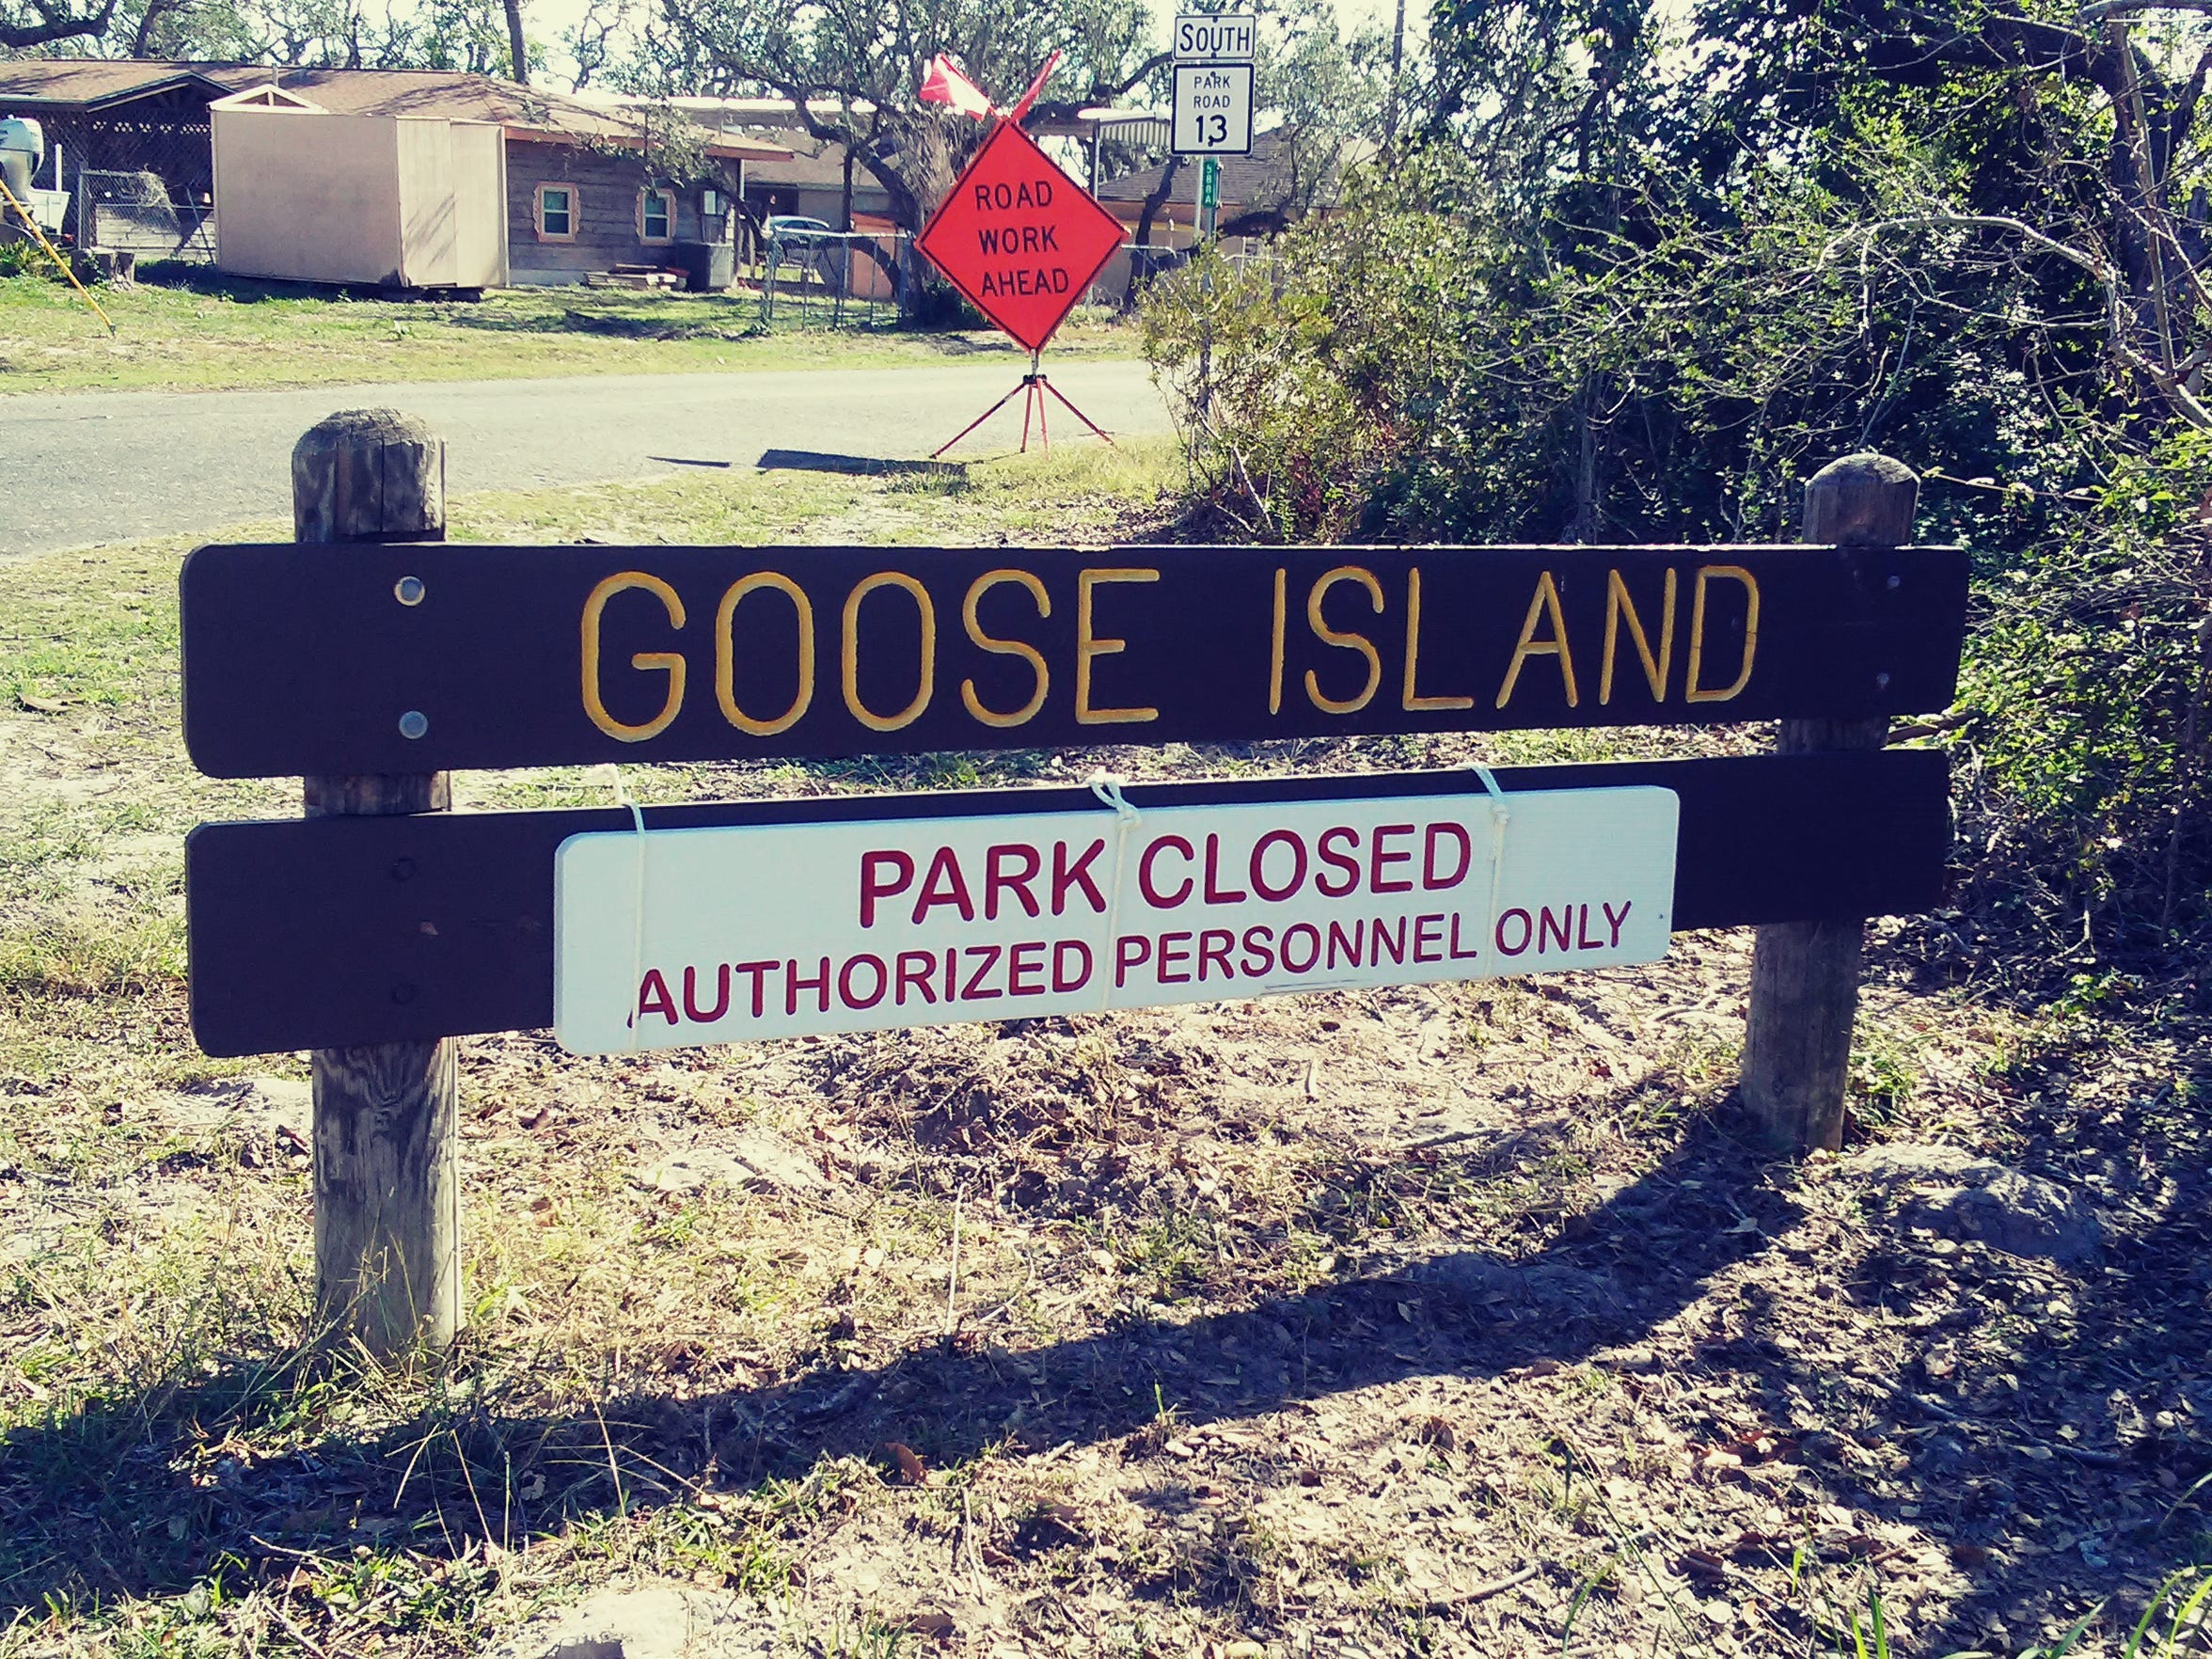 Goose Island State Park reopened after it was partially restored and repaired. Camping is available within about 64 percent of the park's campsites.